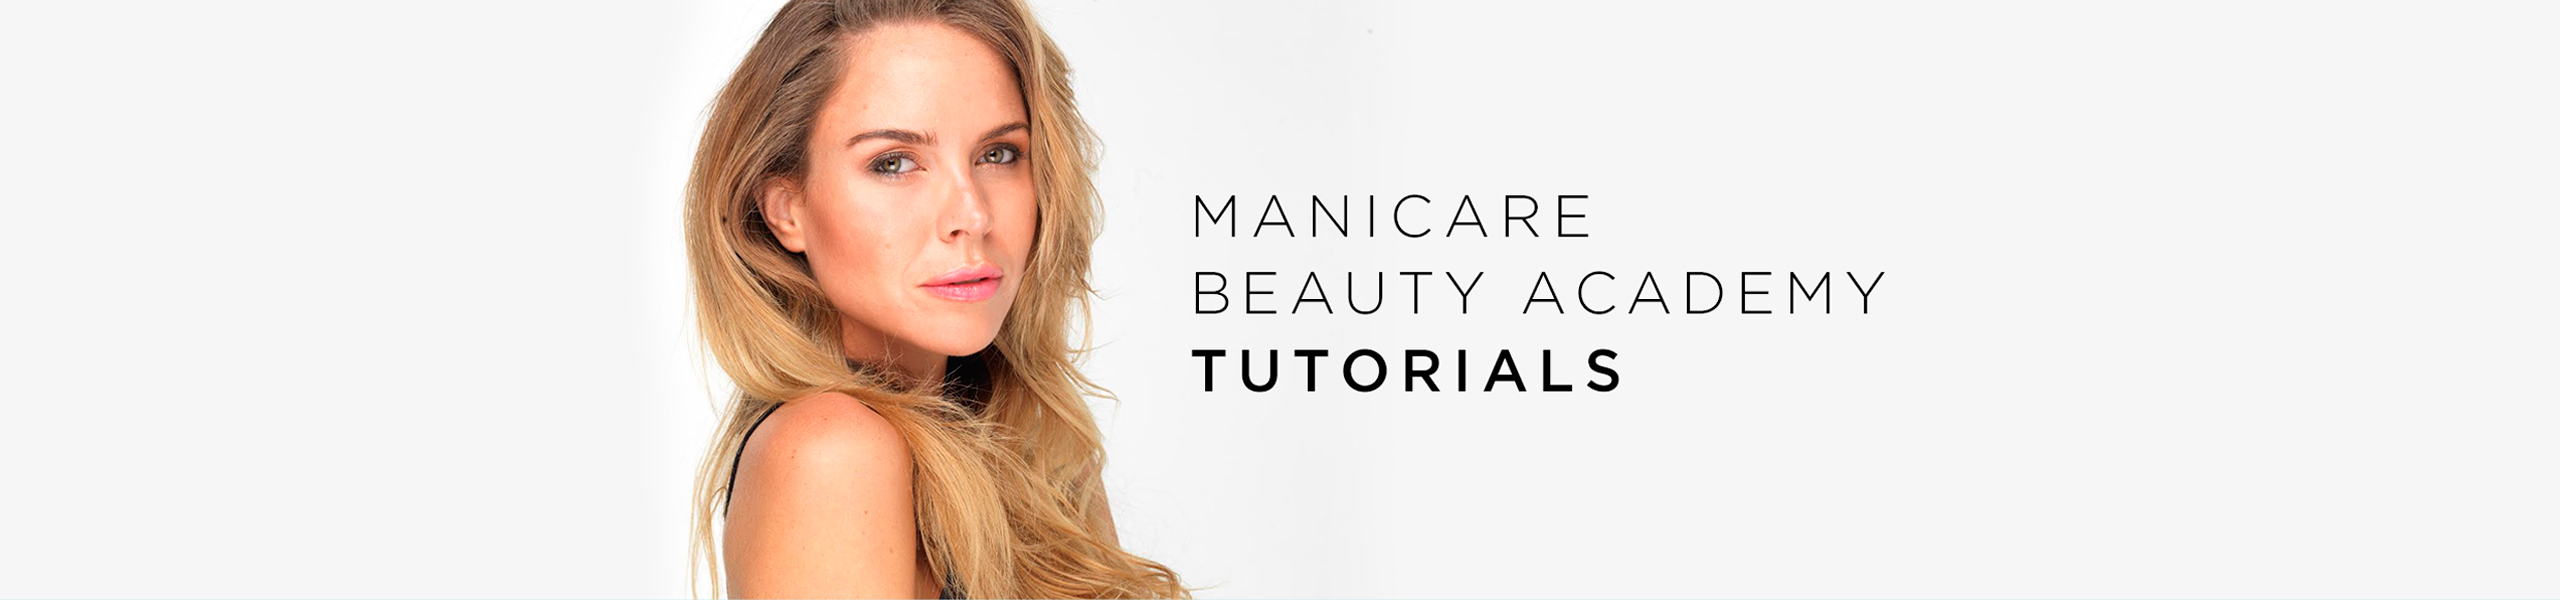 Manicare Beauty Academy Tutorials